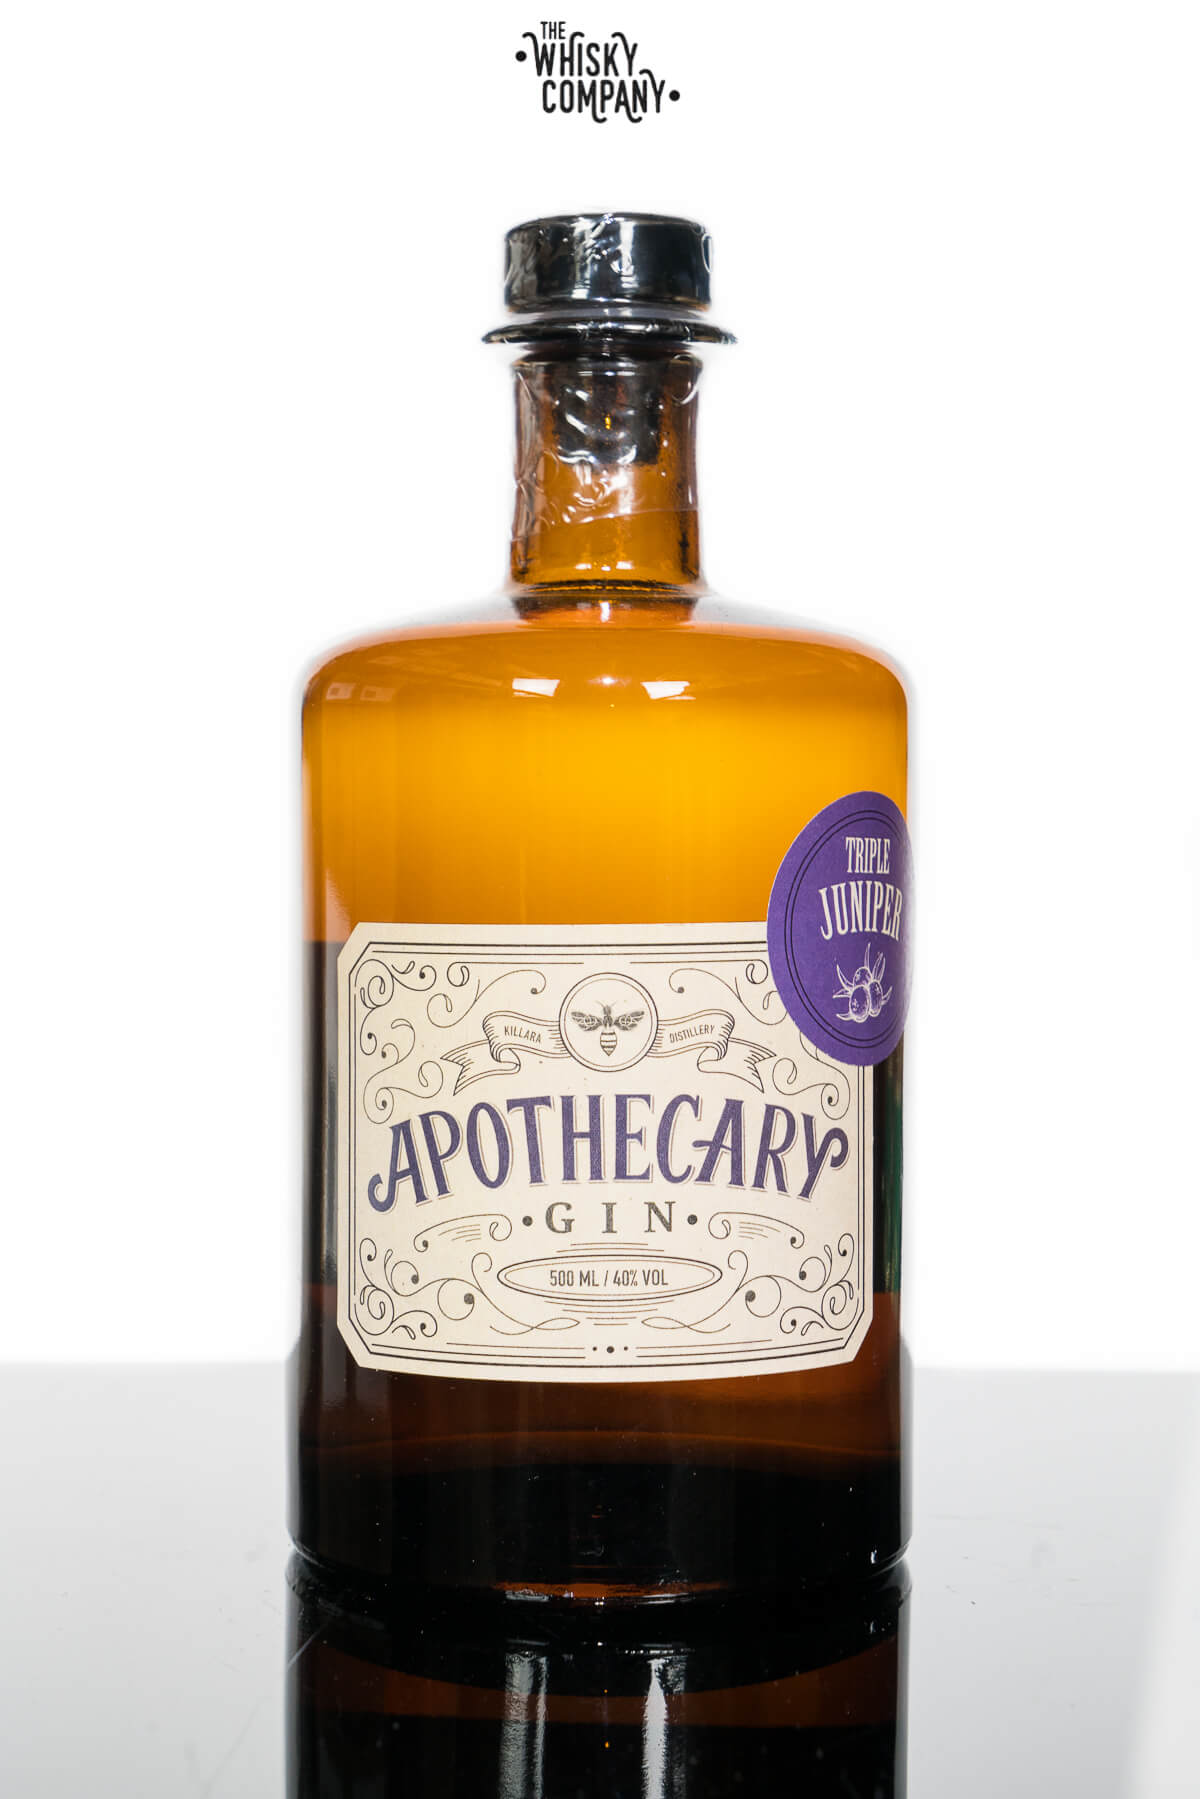 Killara Distillery The Apothecary Gin Triple Juniper (500ml)